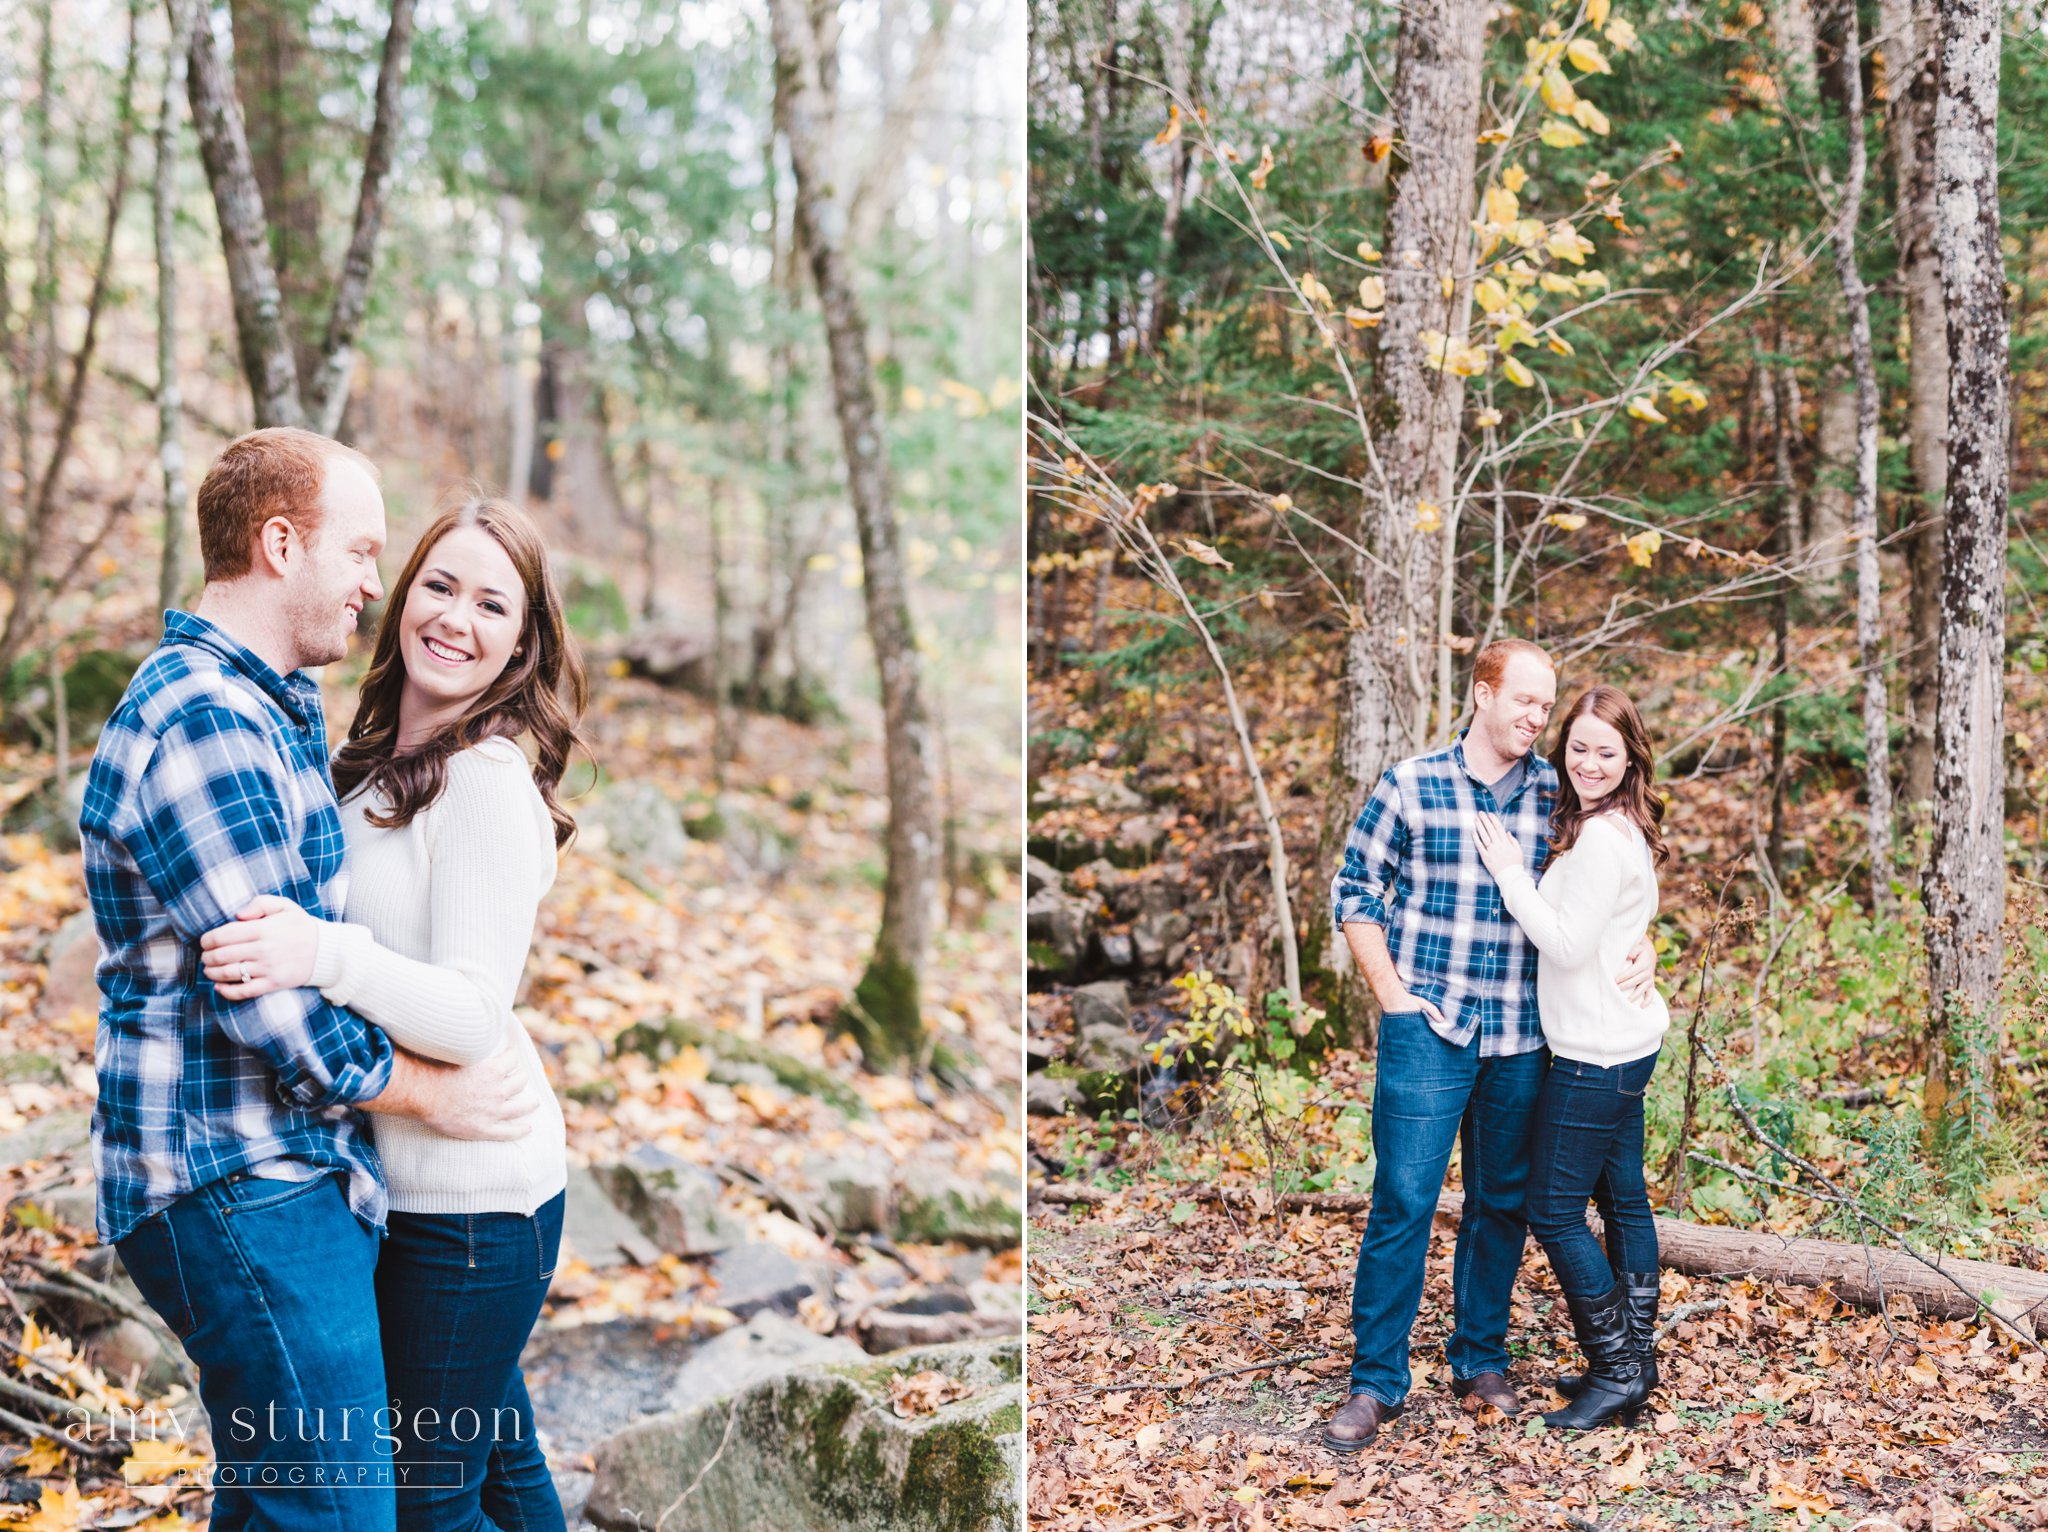 Wakefield Engagement Session with Fall leaves and a happy couple